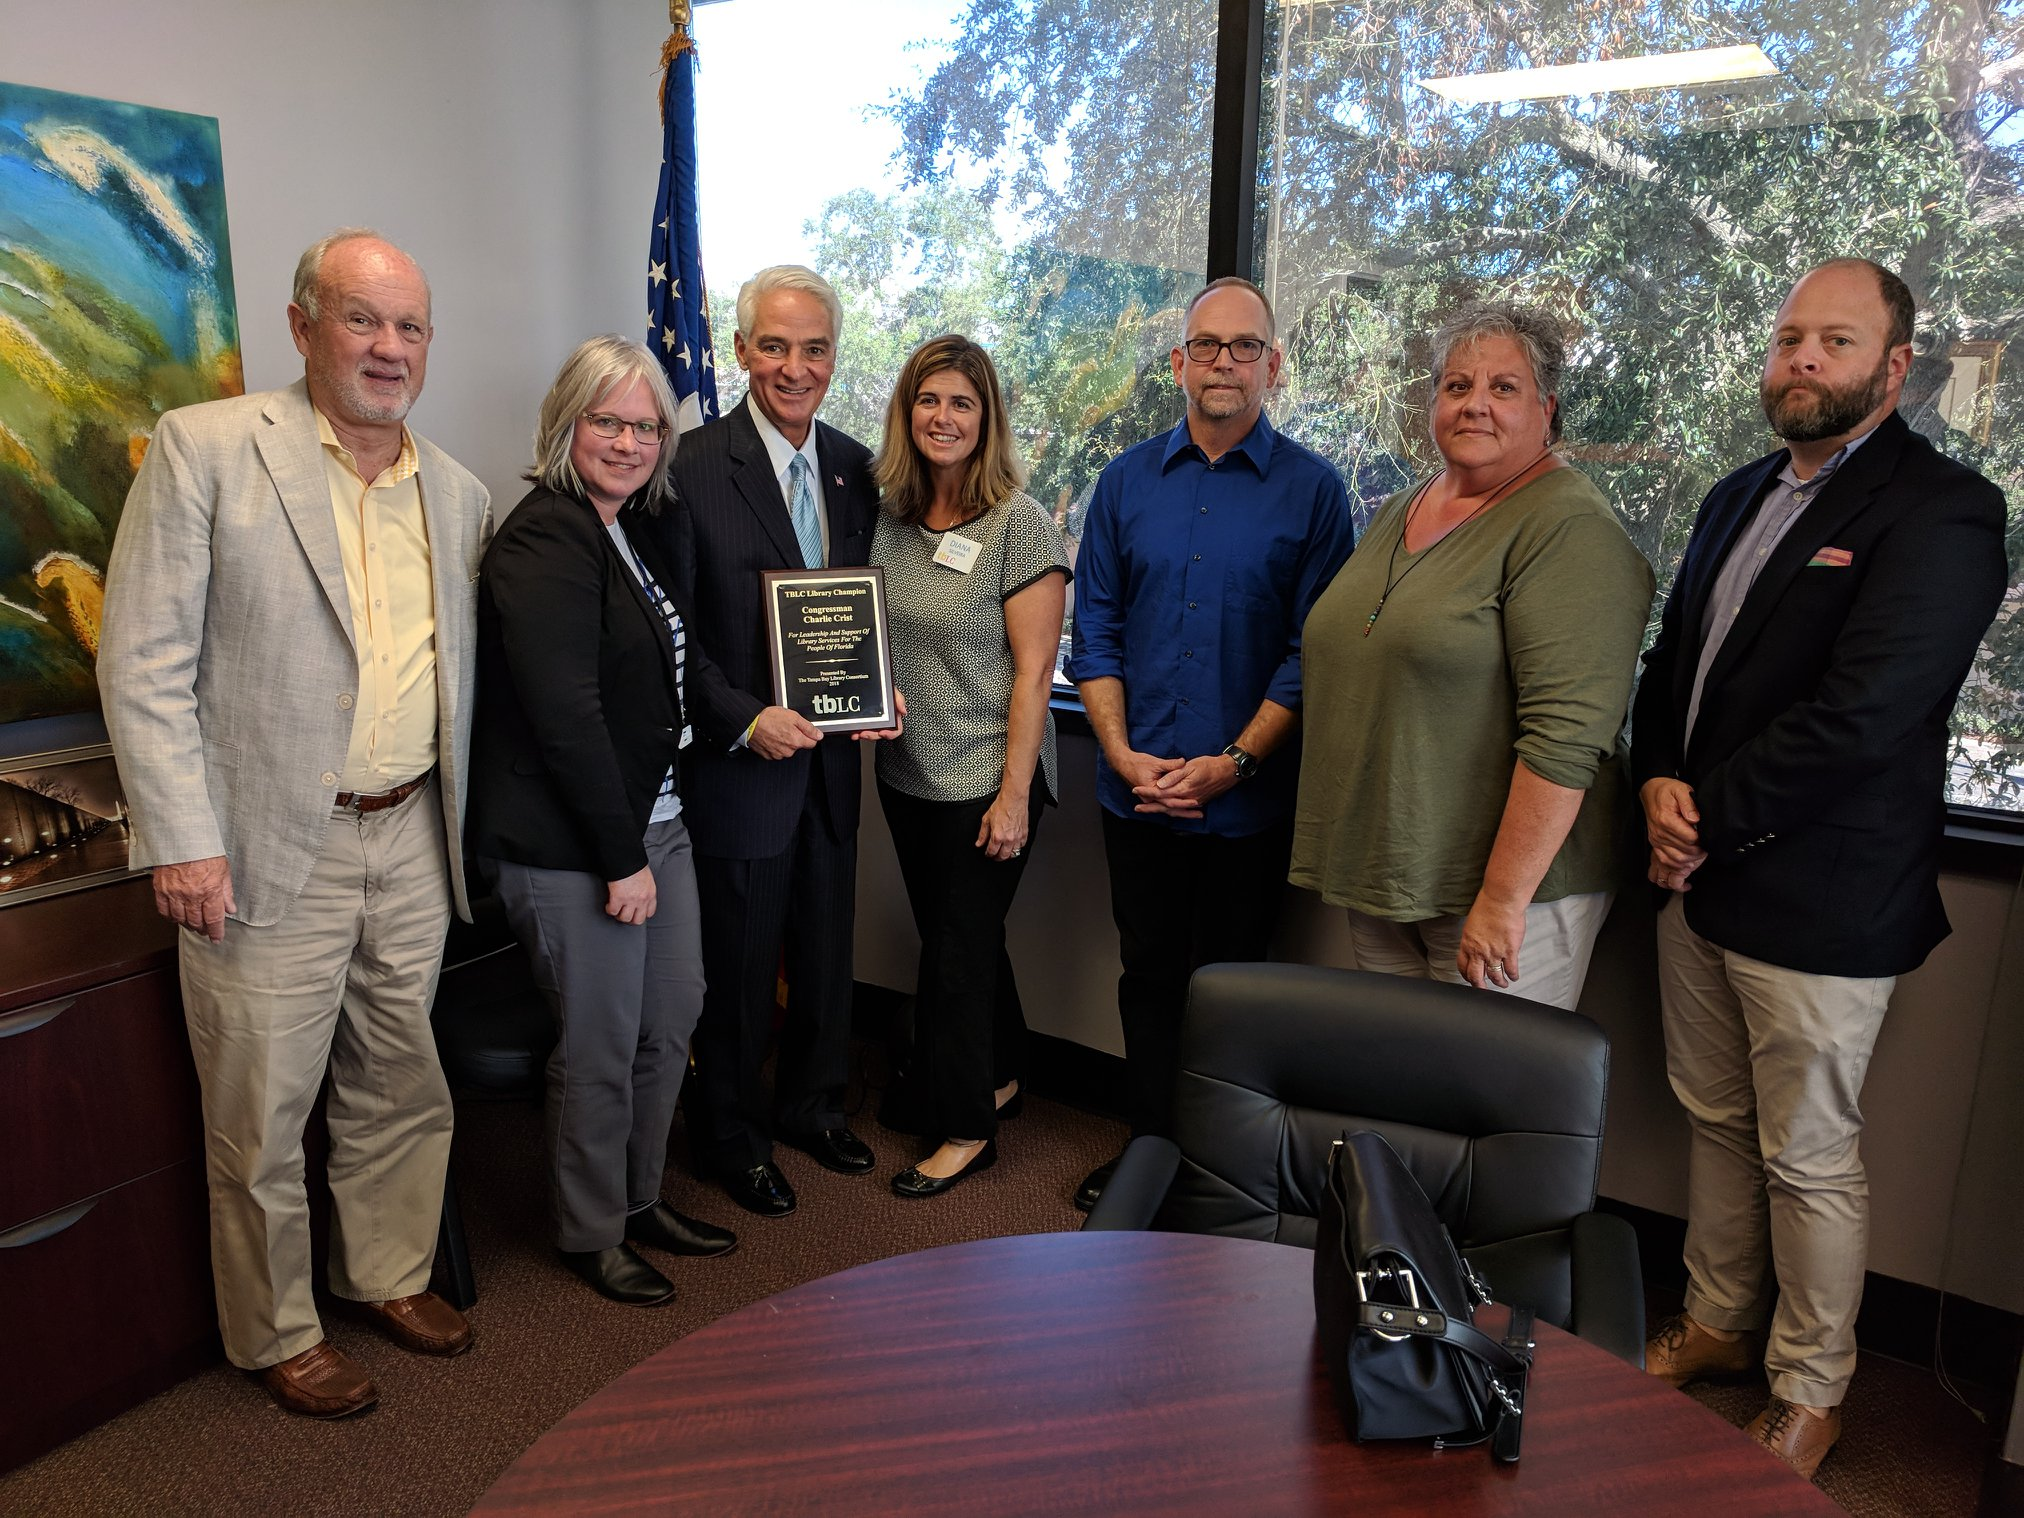 TBLC 2018 Library Champion Awards: Charlie Crist